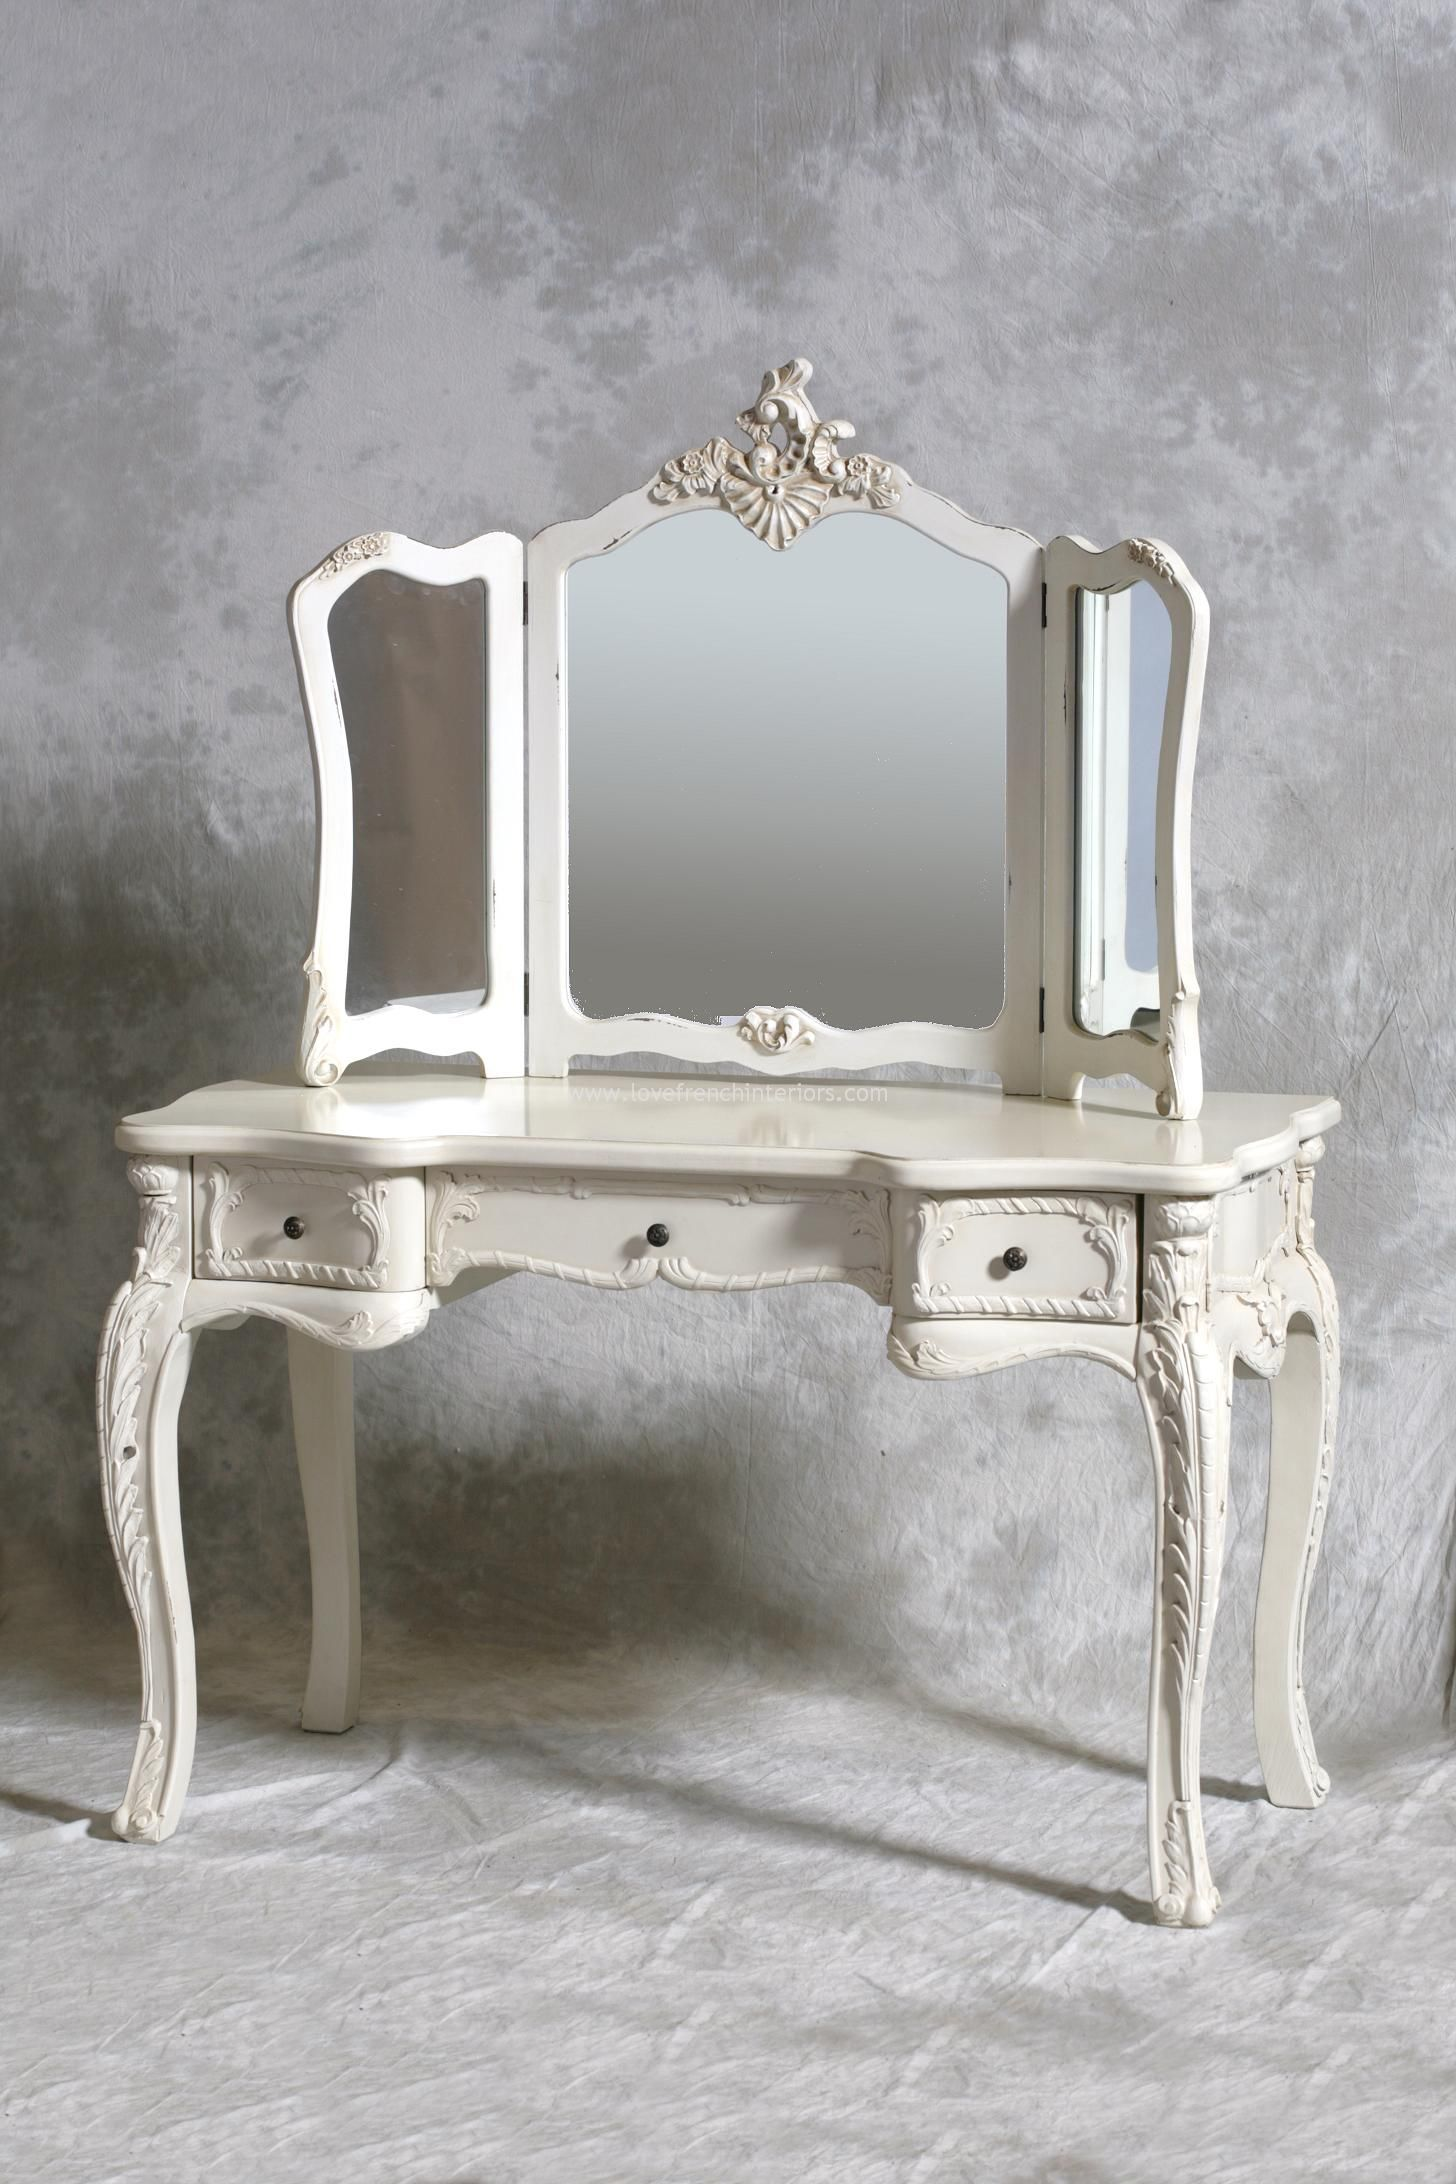 Furniture French Style Antique And Vintage Makeup Vanity Table With 3 Folding Mirror Set Drawer Painted White Color Plus Carving Wooden Legs